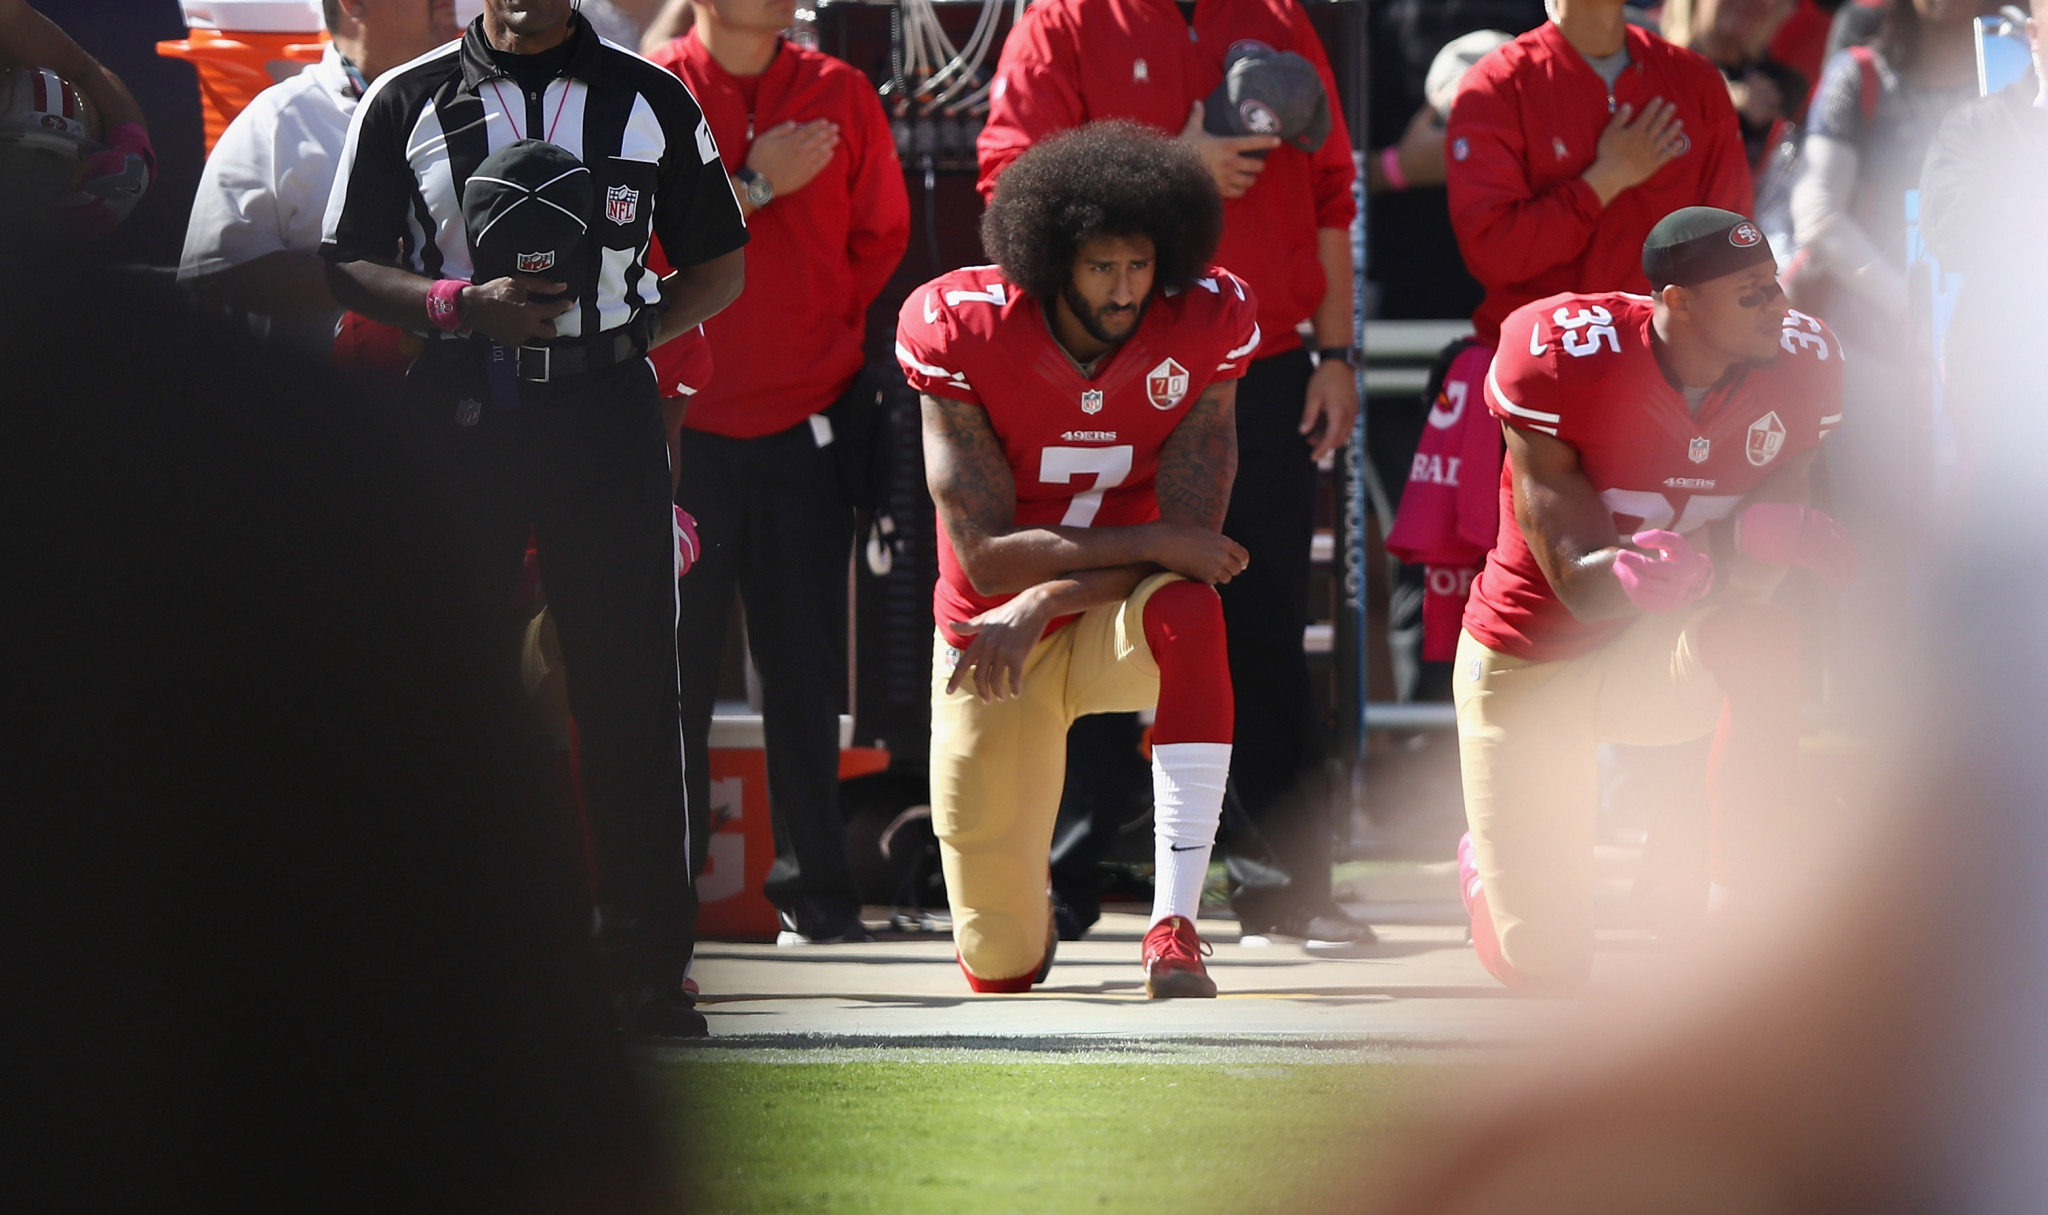 Colin Kaepernick's kneeling kick-started a new era of athlete protests ©Getty Images